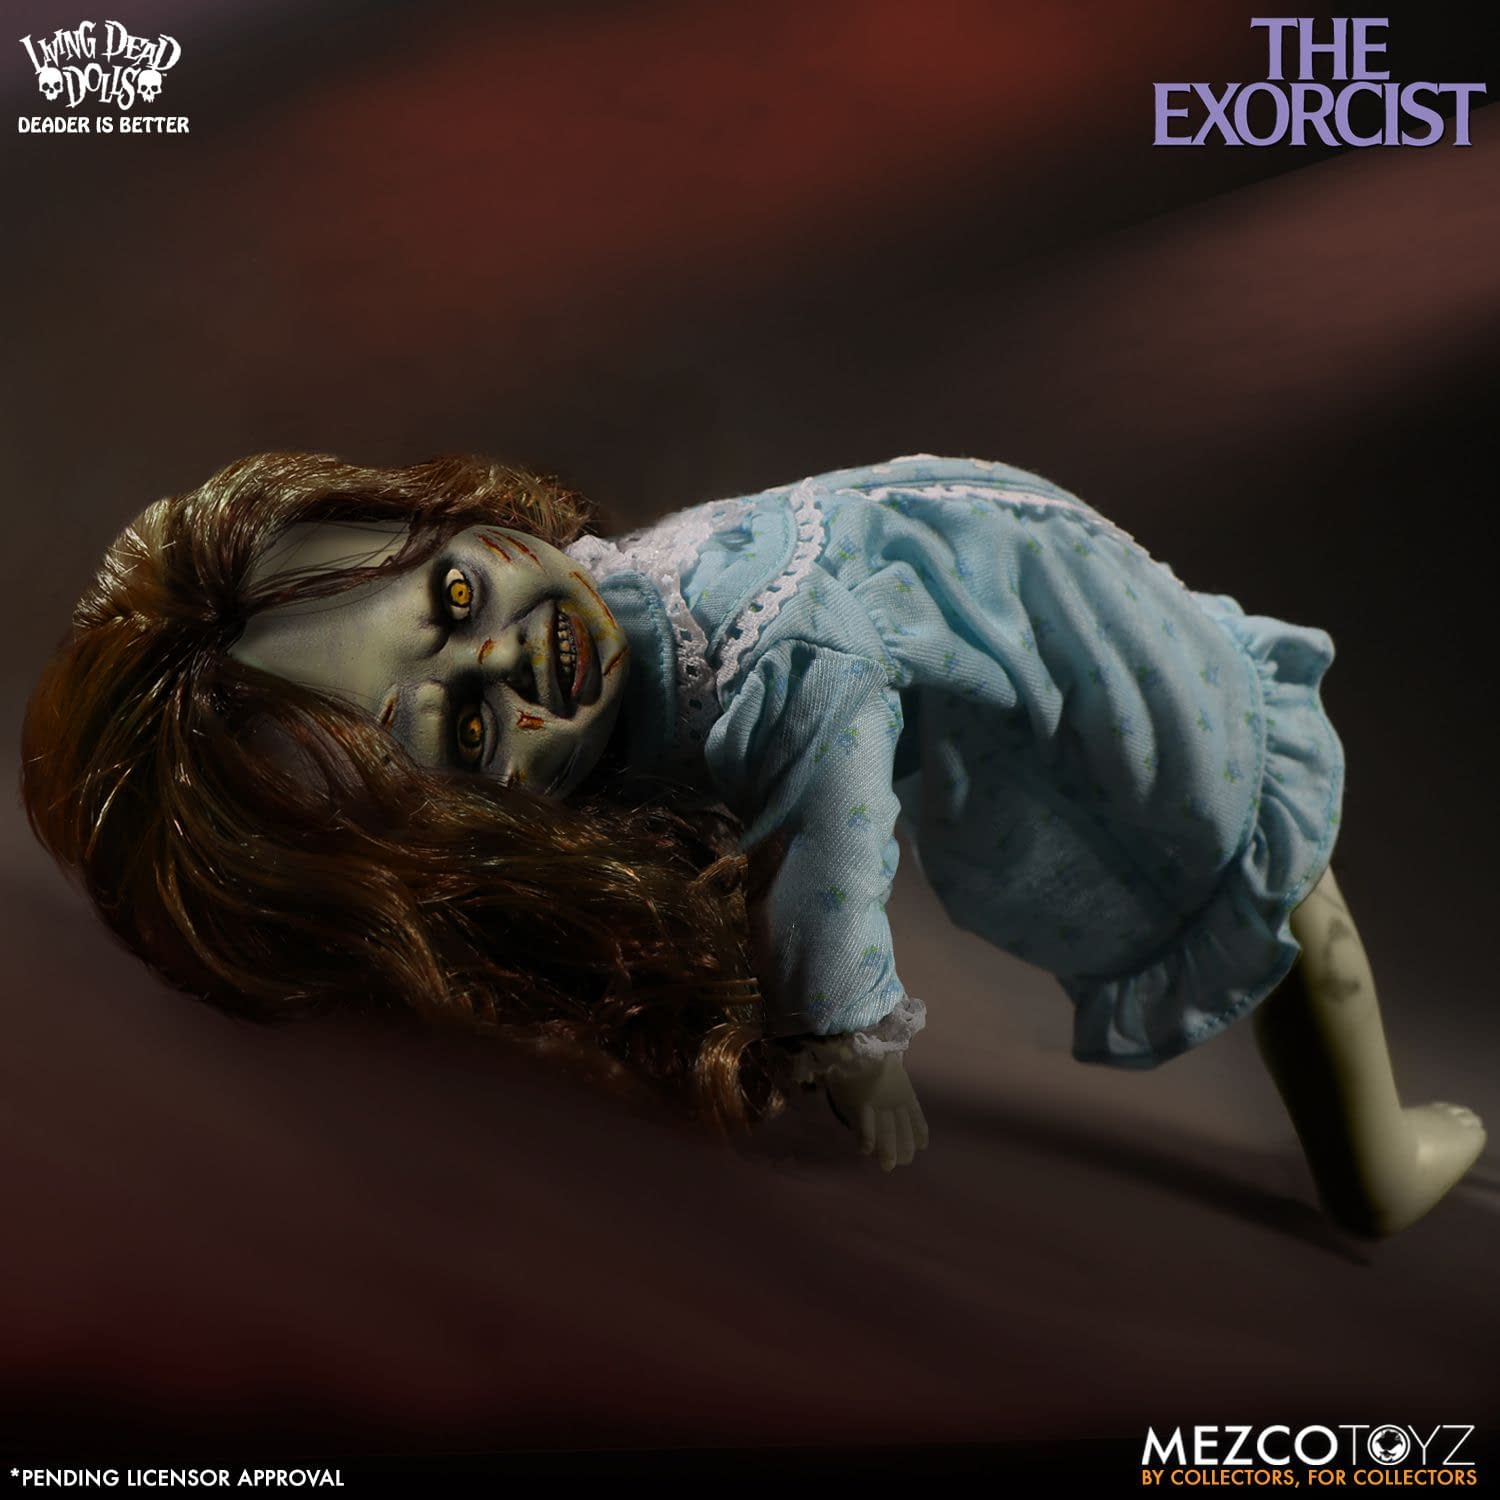 The Exorcist Lives with the New Living Dead Doll from Mezco